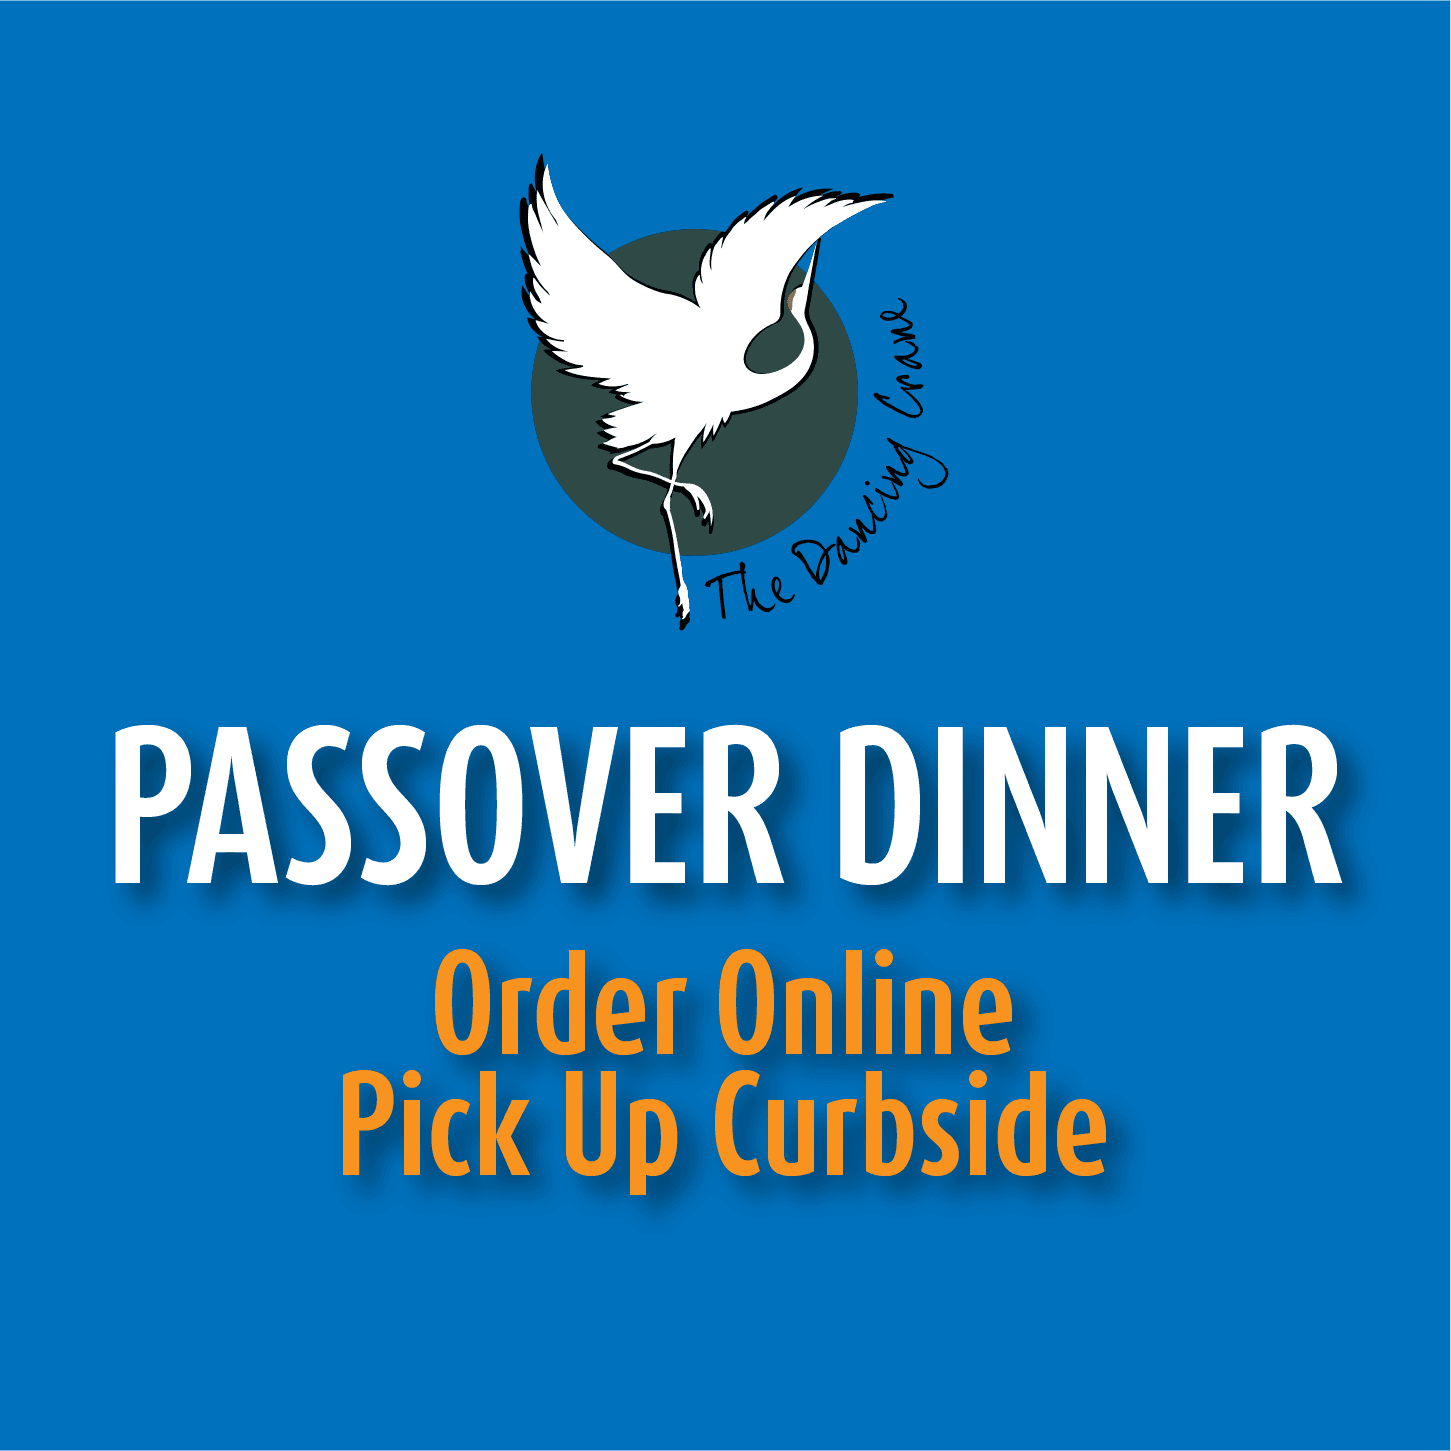 Order your Passover Dinner online and pick up curbside.